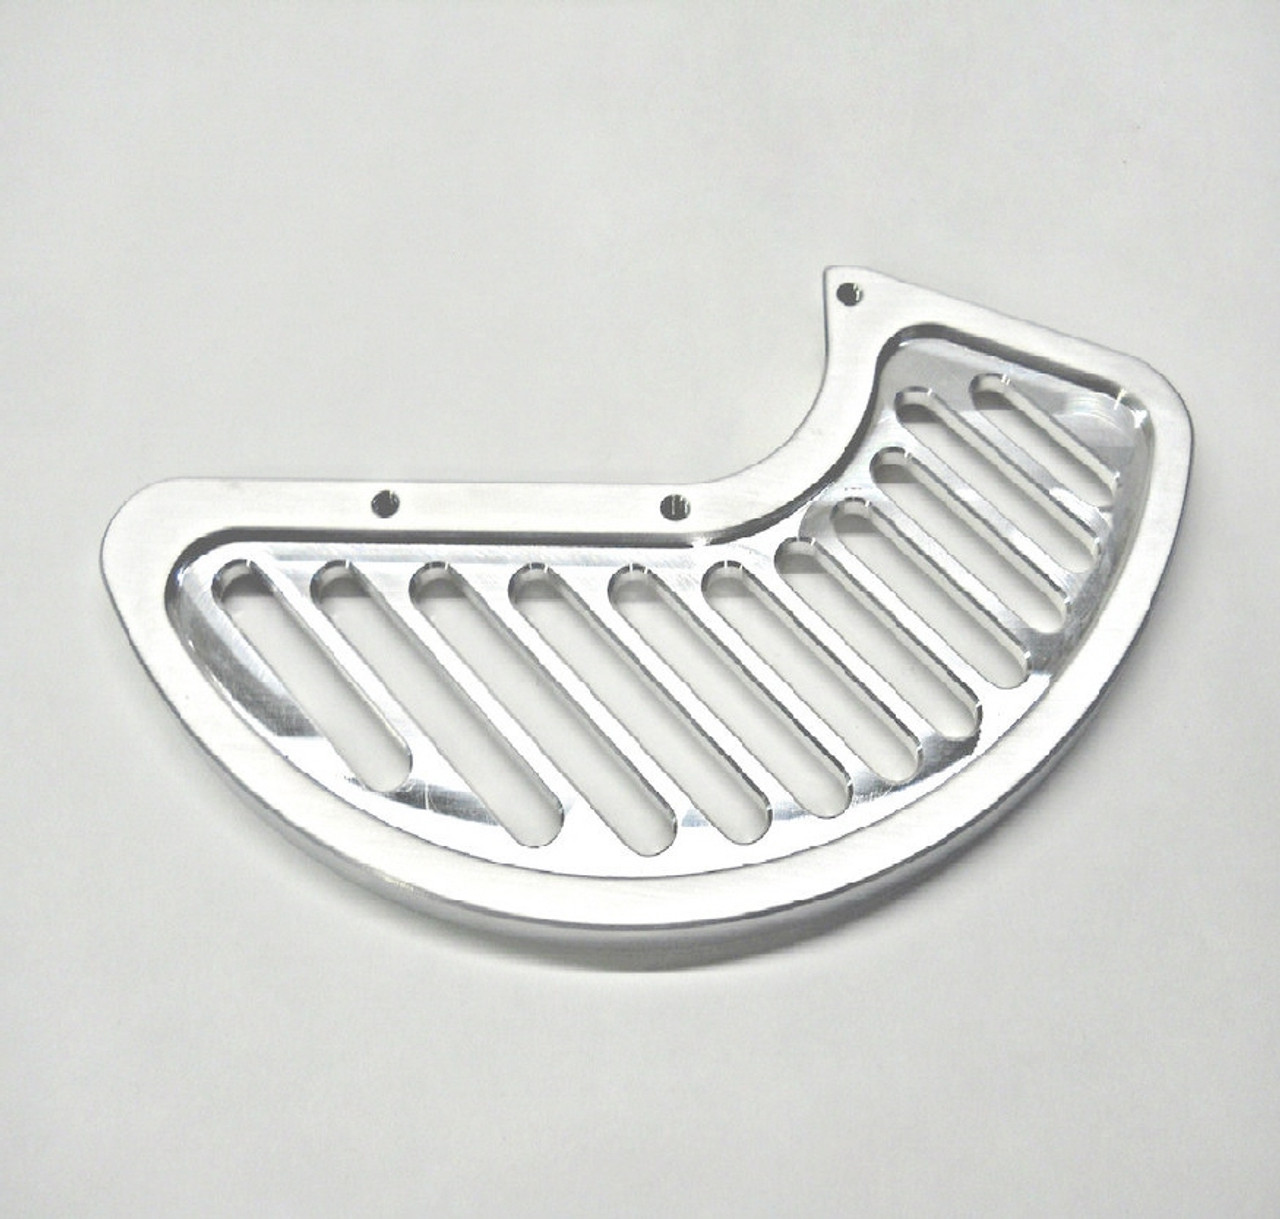 REPLACEMENT FIN - ALUMINUM - OVERSIZE FOR RIGHT SIDE USE ON TOPAR 100 SERIES FRONT BRAKE DISC GUARD MOUNTS